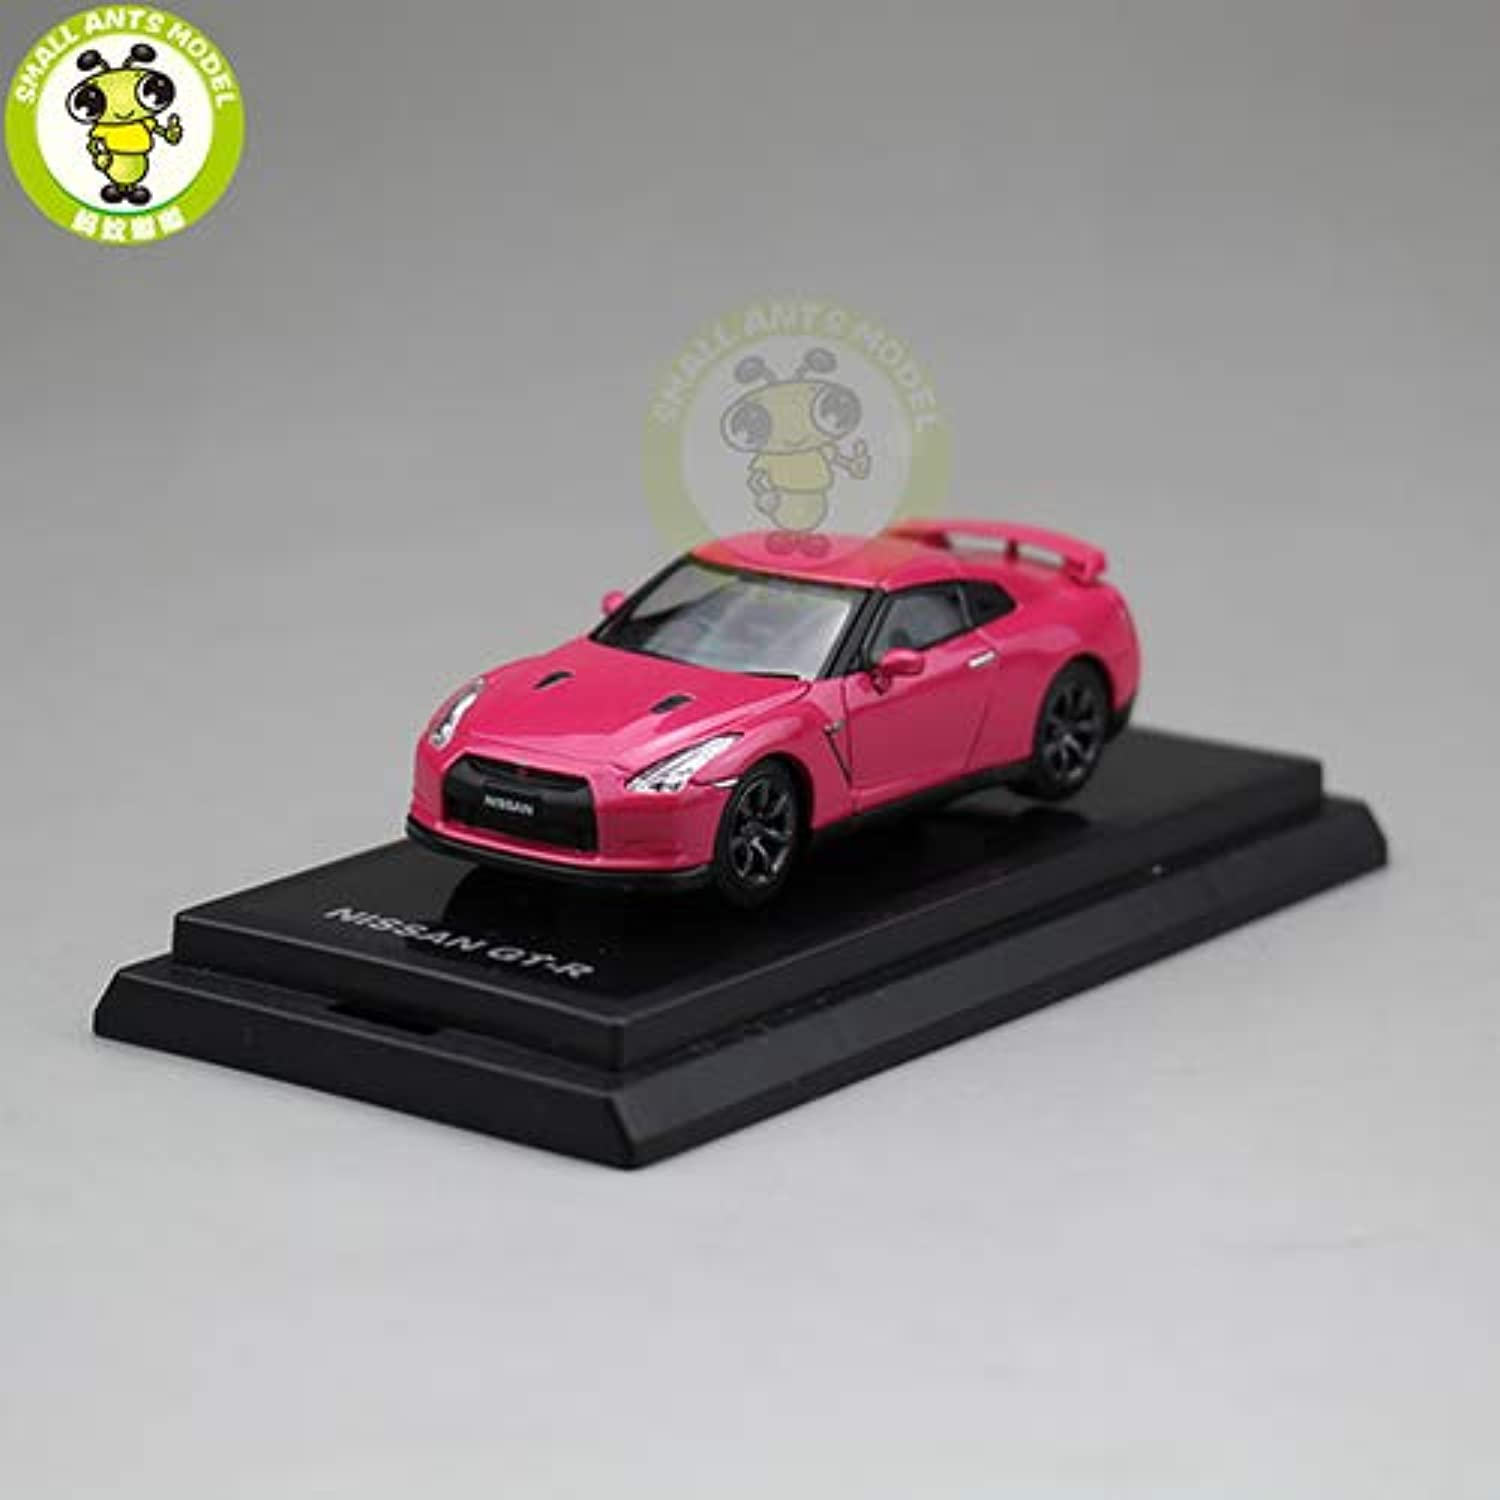 Generic 1 64 Nissan GTR GT R R35 Racing Sport Car Diecast Metal Car Model Toy Gift Hobby Collection Pink